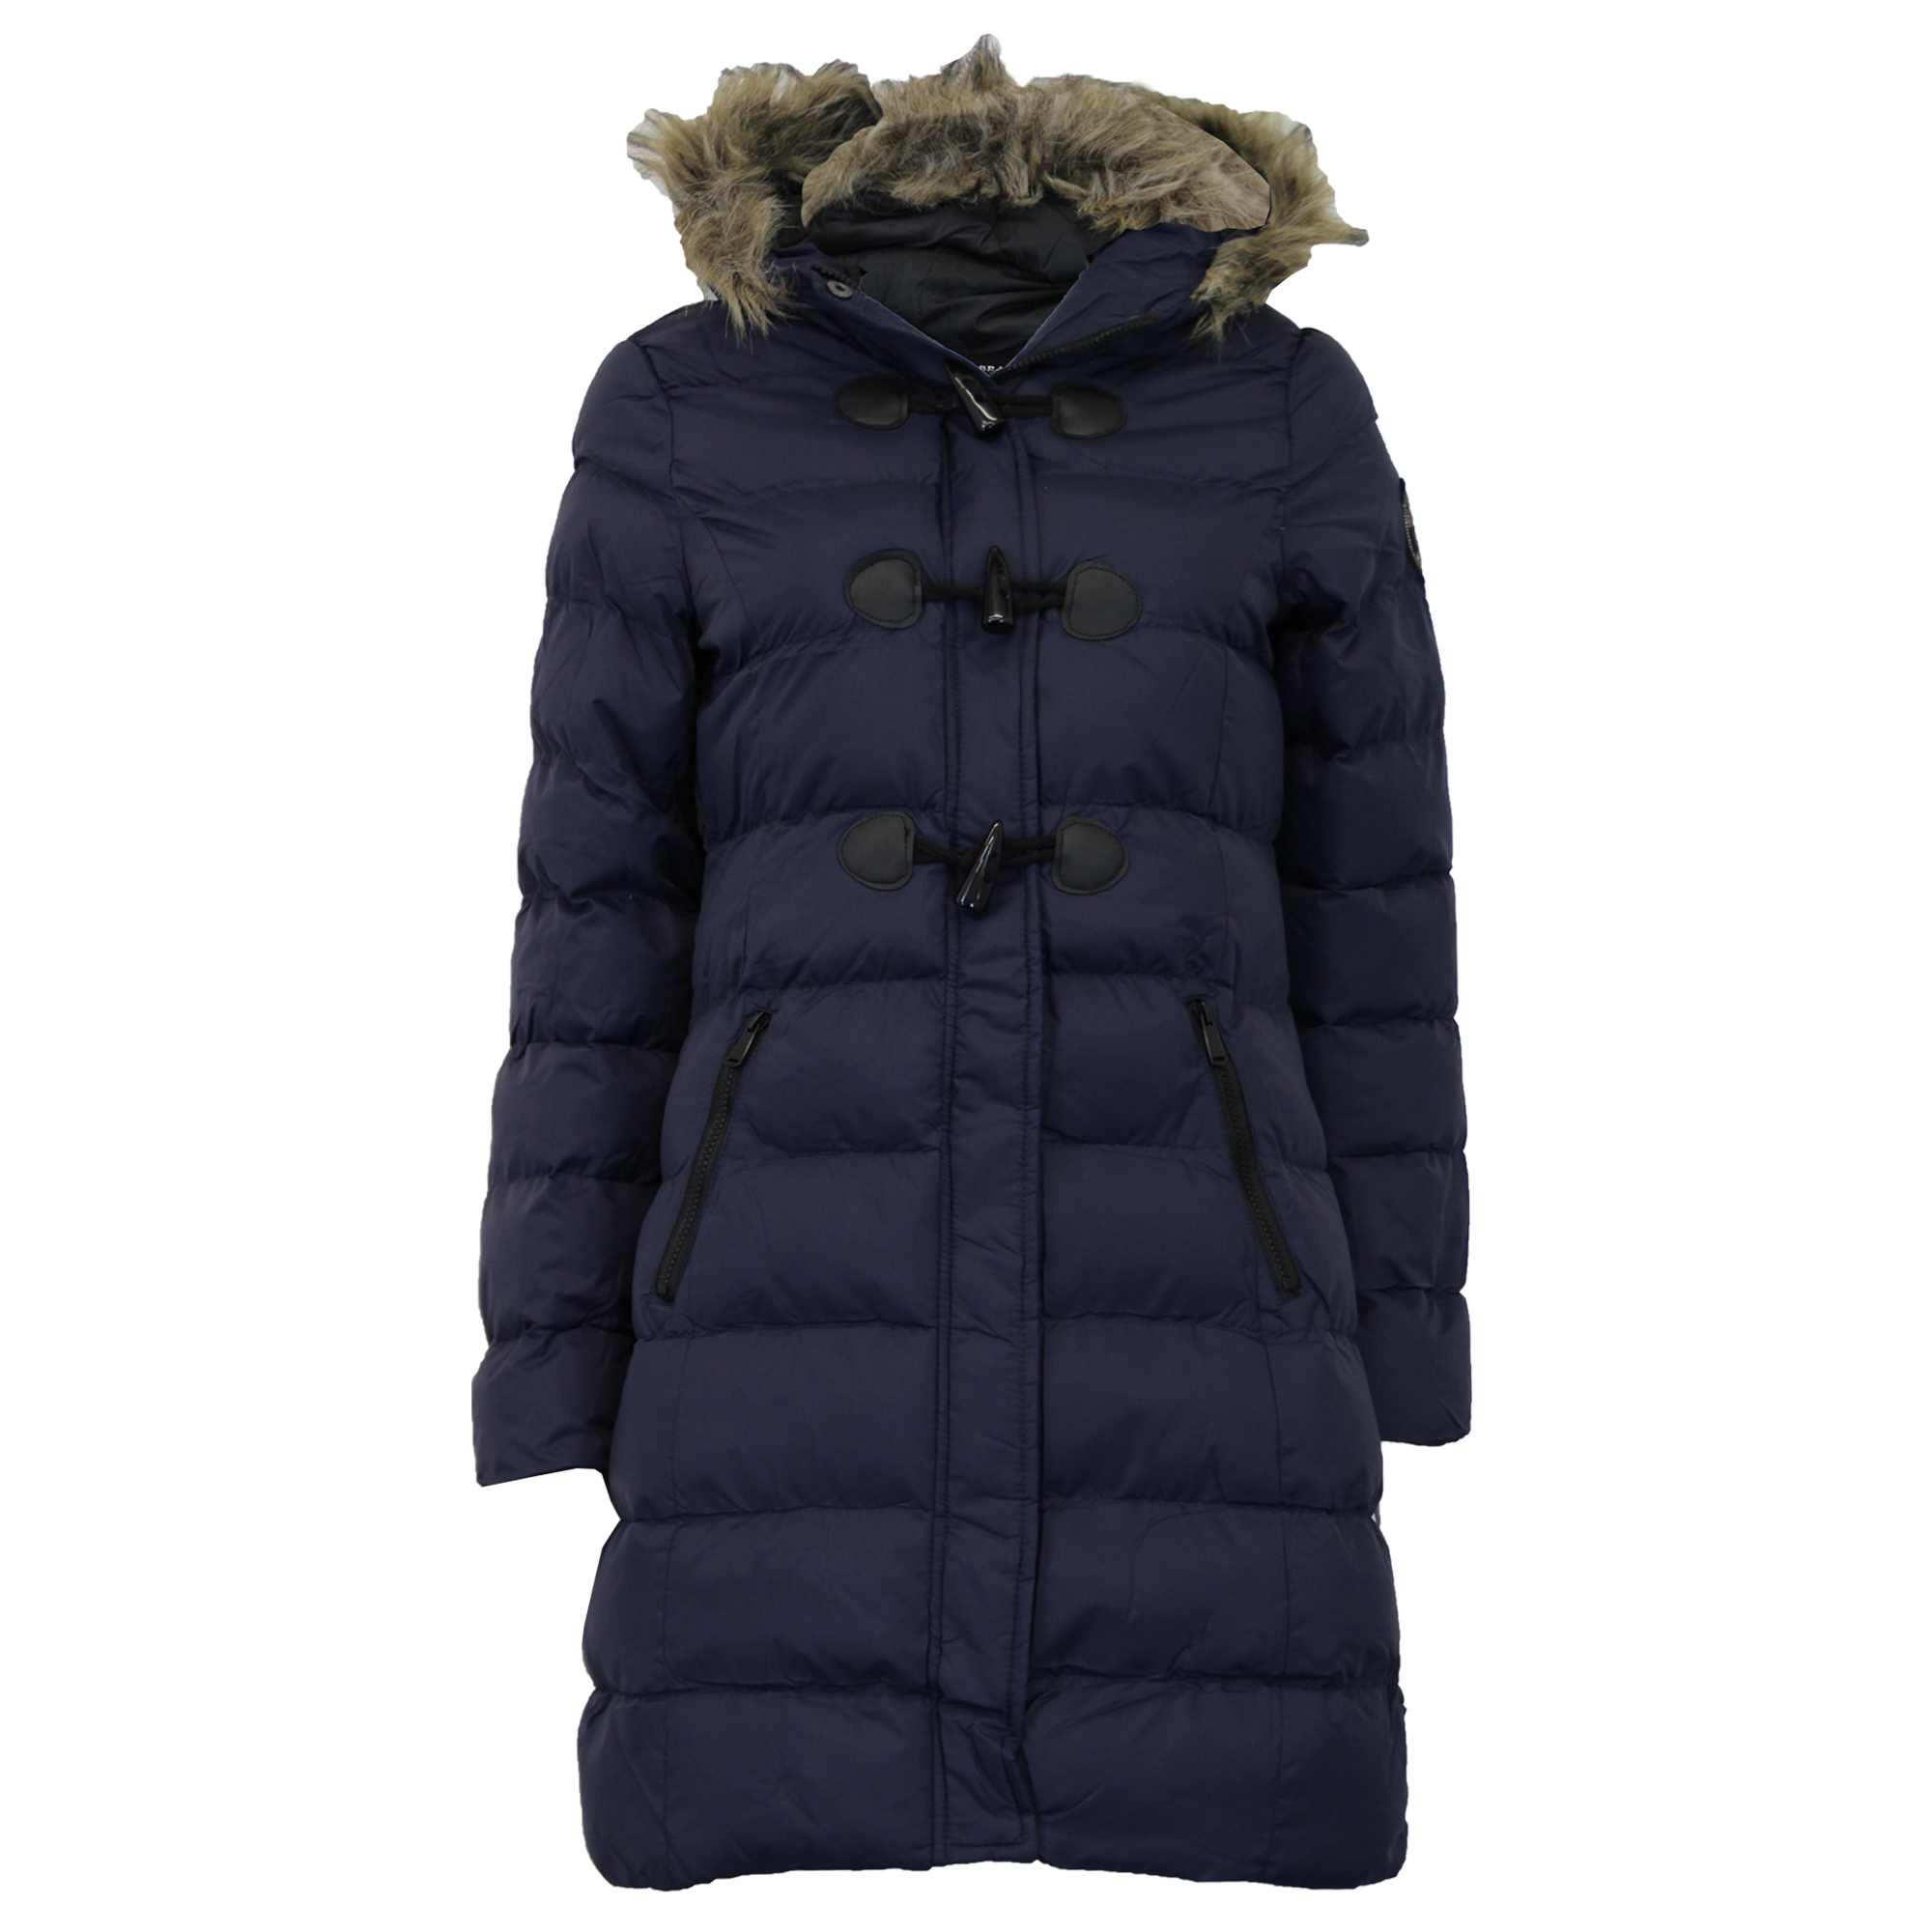 This is a nice coat. The shoulder fit is a little small because the coat is really bulky. It is warm and pretty.